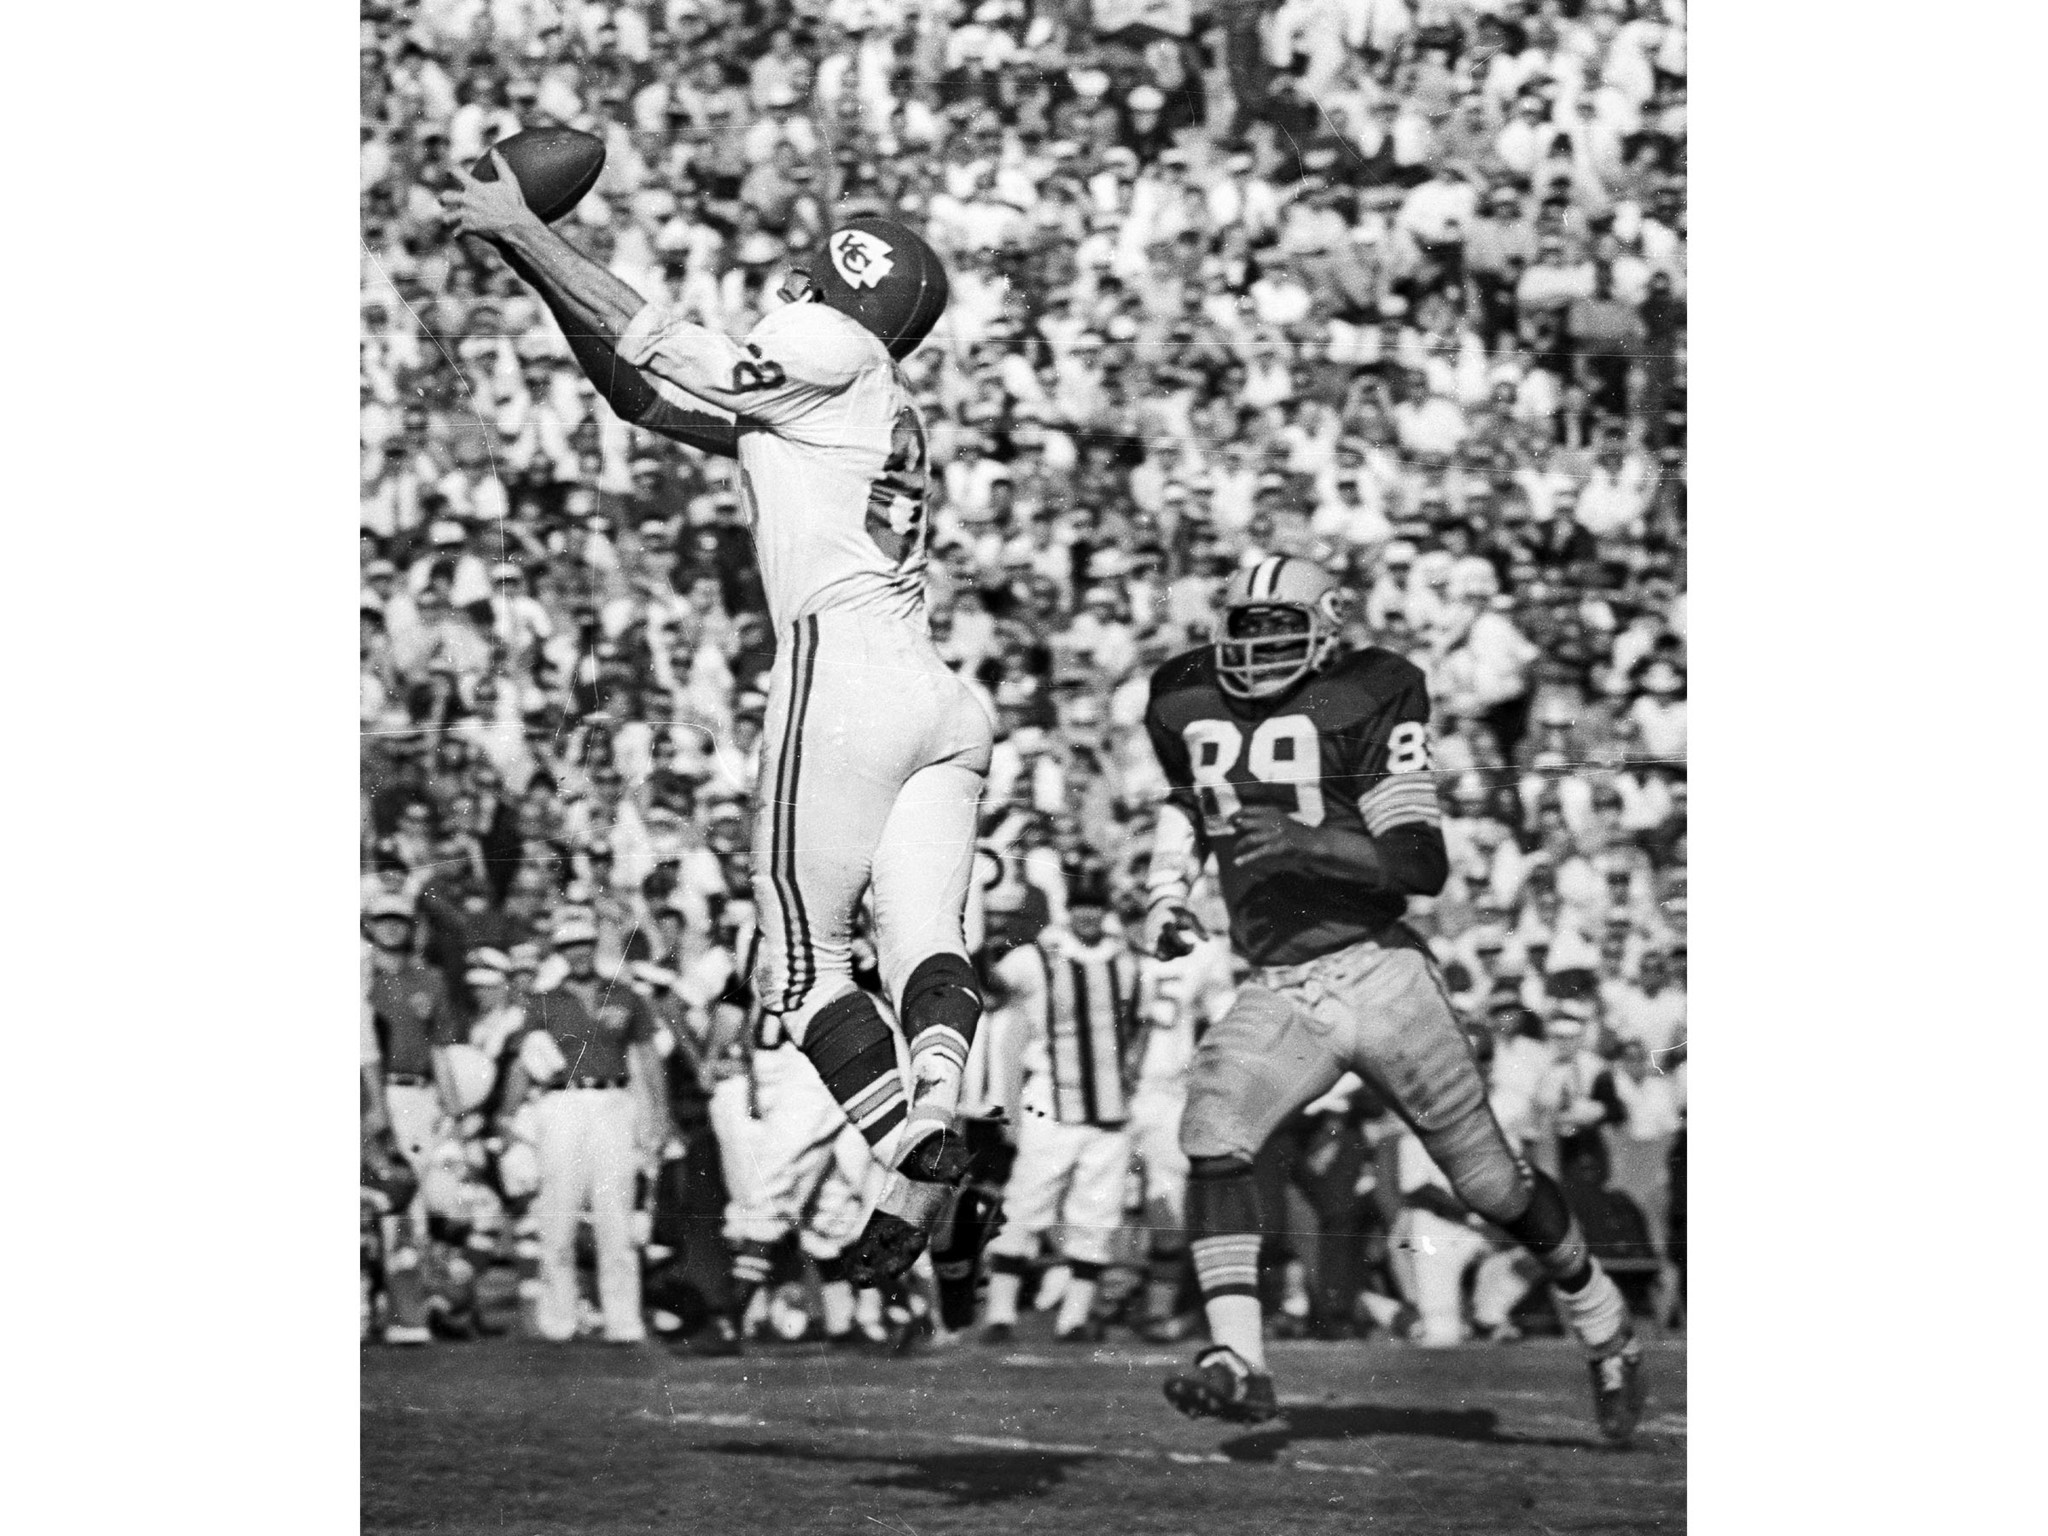 Jan. 15, 1967: Chiefs' wide receiver Chris Burford goes for ball during first Super Bowl game at Lo